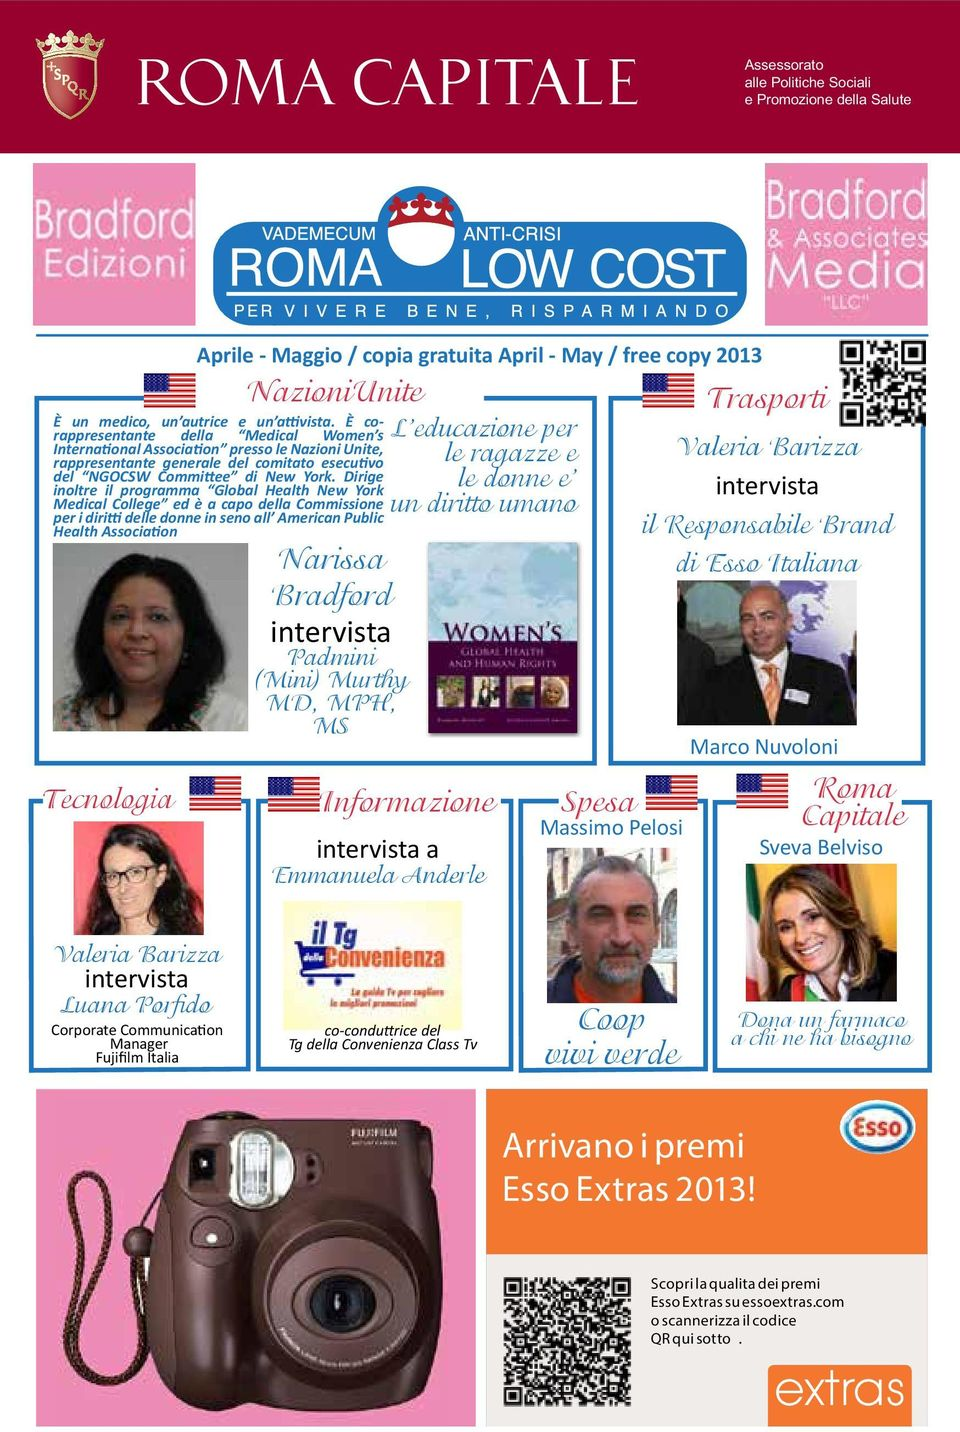 Medical College ed è a capo della Commissione per i diritti delle donne in seno all American Public Health Association Tecnologia Valeria Barizza intervista Luana Porfido Corporate Communication